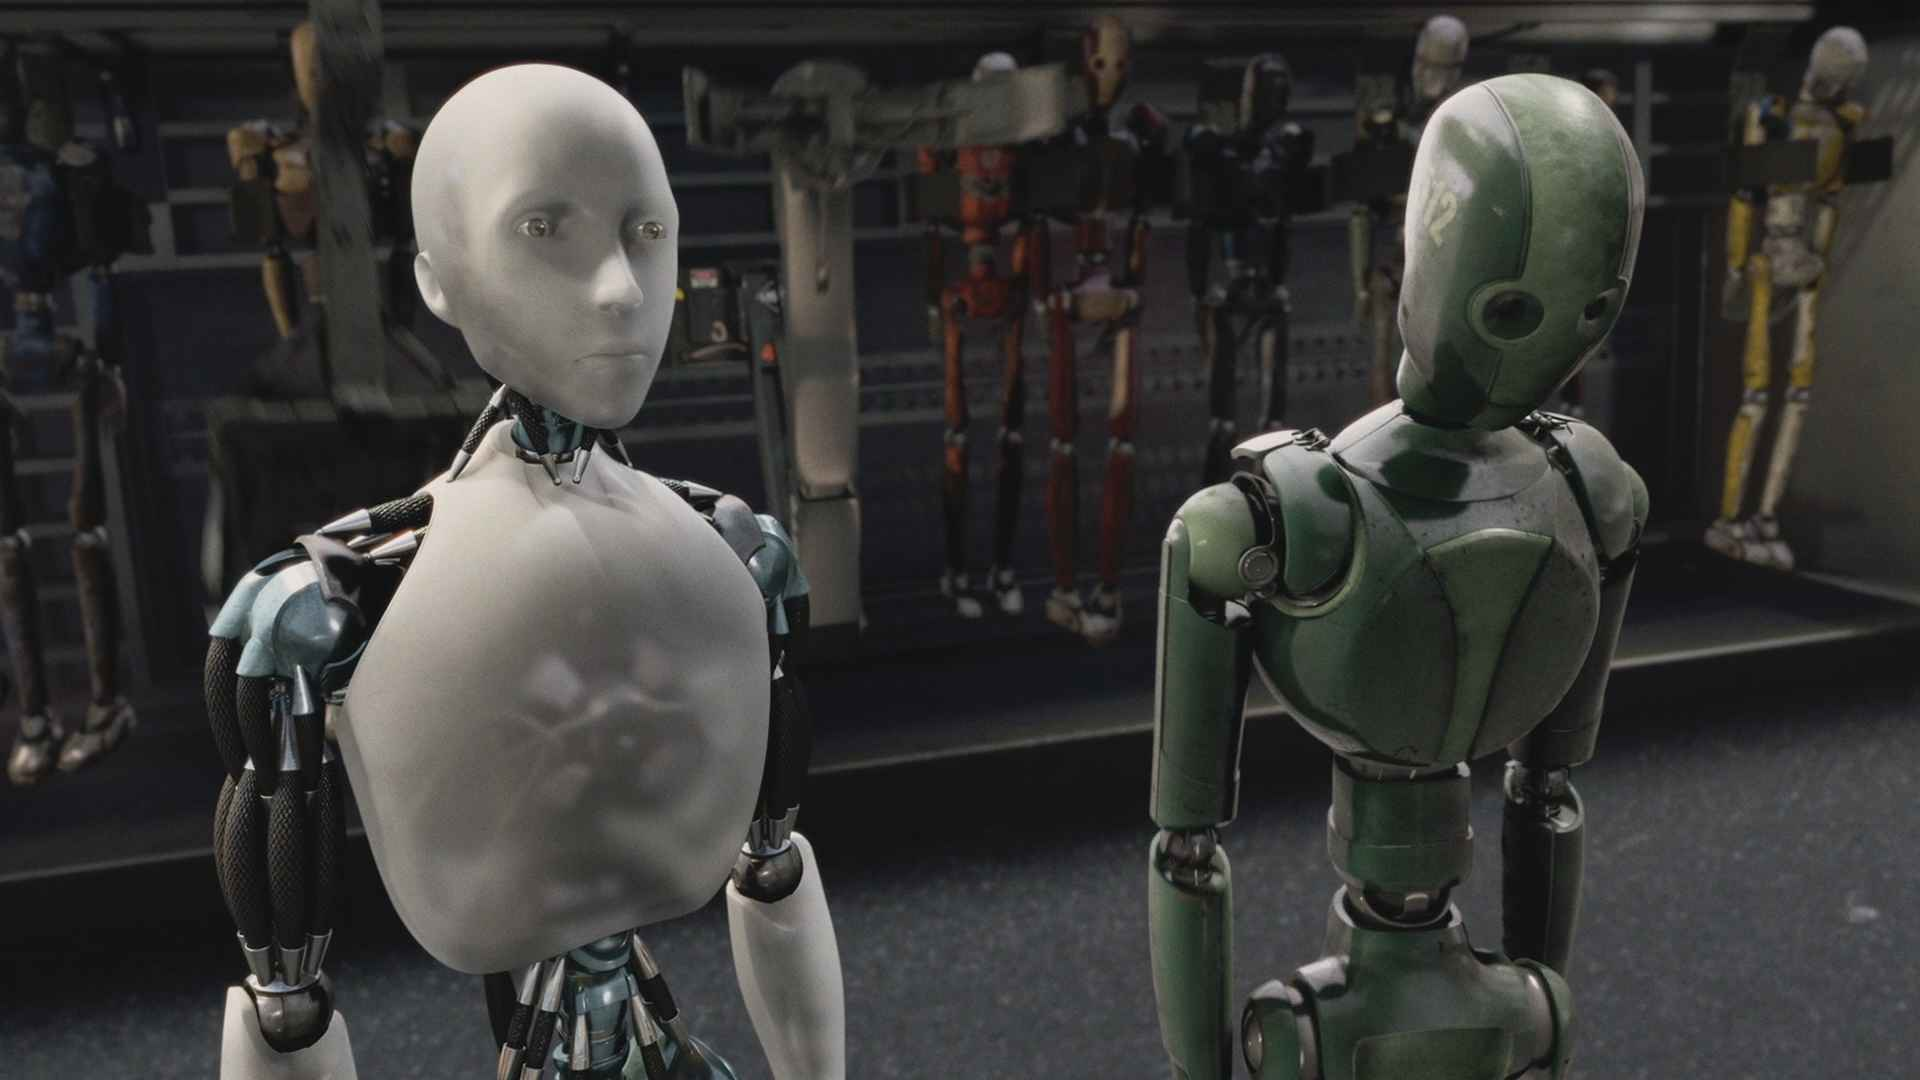 turning humans into robots At sensors expo midwest 2018, on tuesday, october 17, 2018 from 10:10 am to 11:00 am, you can get what you need by attending the session titled how modern technology makes human workers as efficient as robots in theater 2.